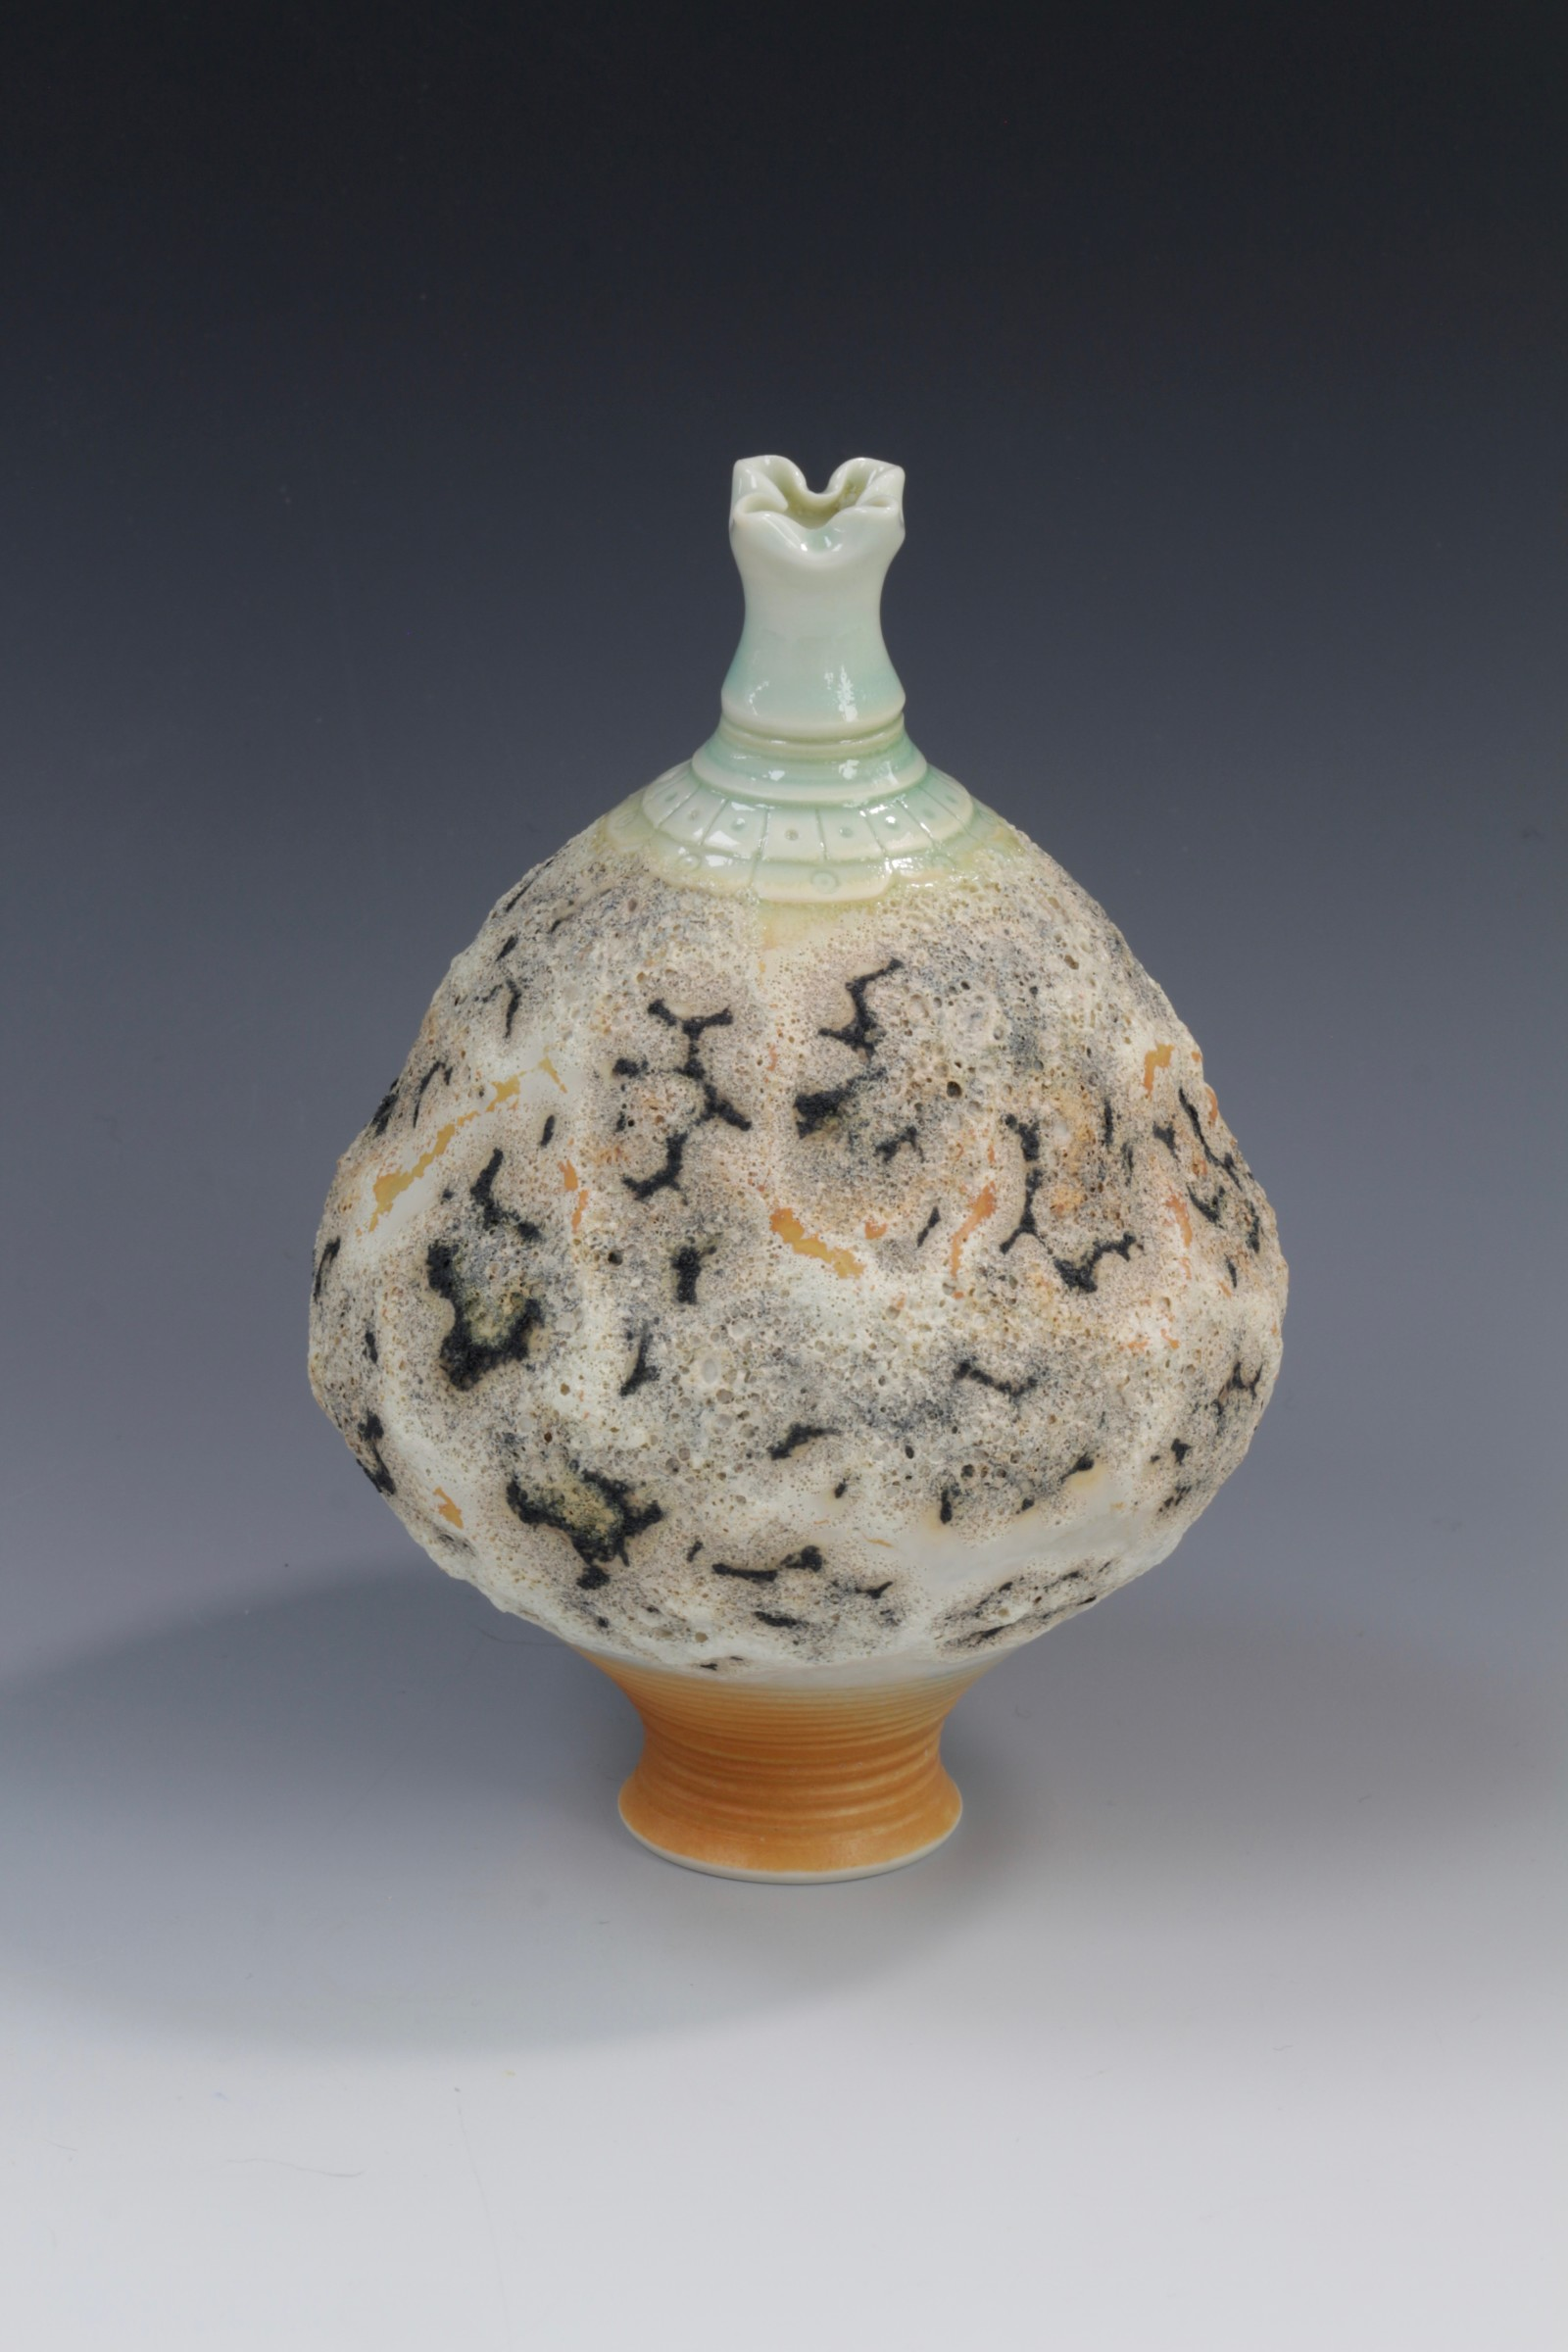 "<span class=""link fancybox-details-link""><a href=""/artists/61-geoffrey-swindell/works/7079-geoffrey-swindell-bud-vase-2020/"">View Detail Page</a></span><div class=""artist""><strong>Geoffrey Swindell</strong></div> <div class=""title""><em>Bud Vase</em>, 2020</div> <div class=""signed_and_dated"">impressed artist's seal to base</div> <div class=""medium"">porcelain</div><div class=""copyright_line"">Own Art: £ 17 x 10 Months, 0% APR</div>"